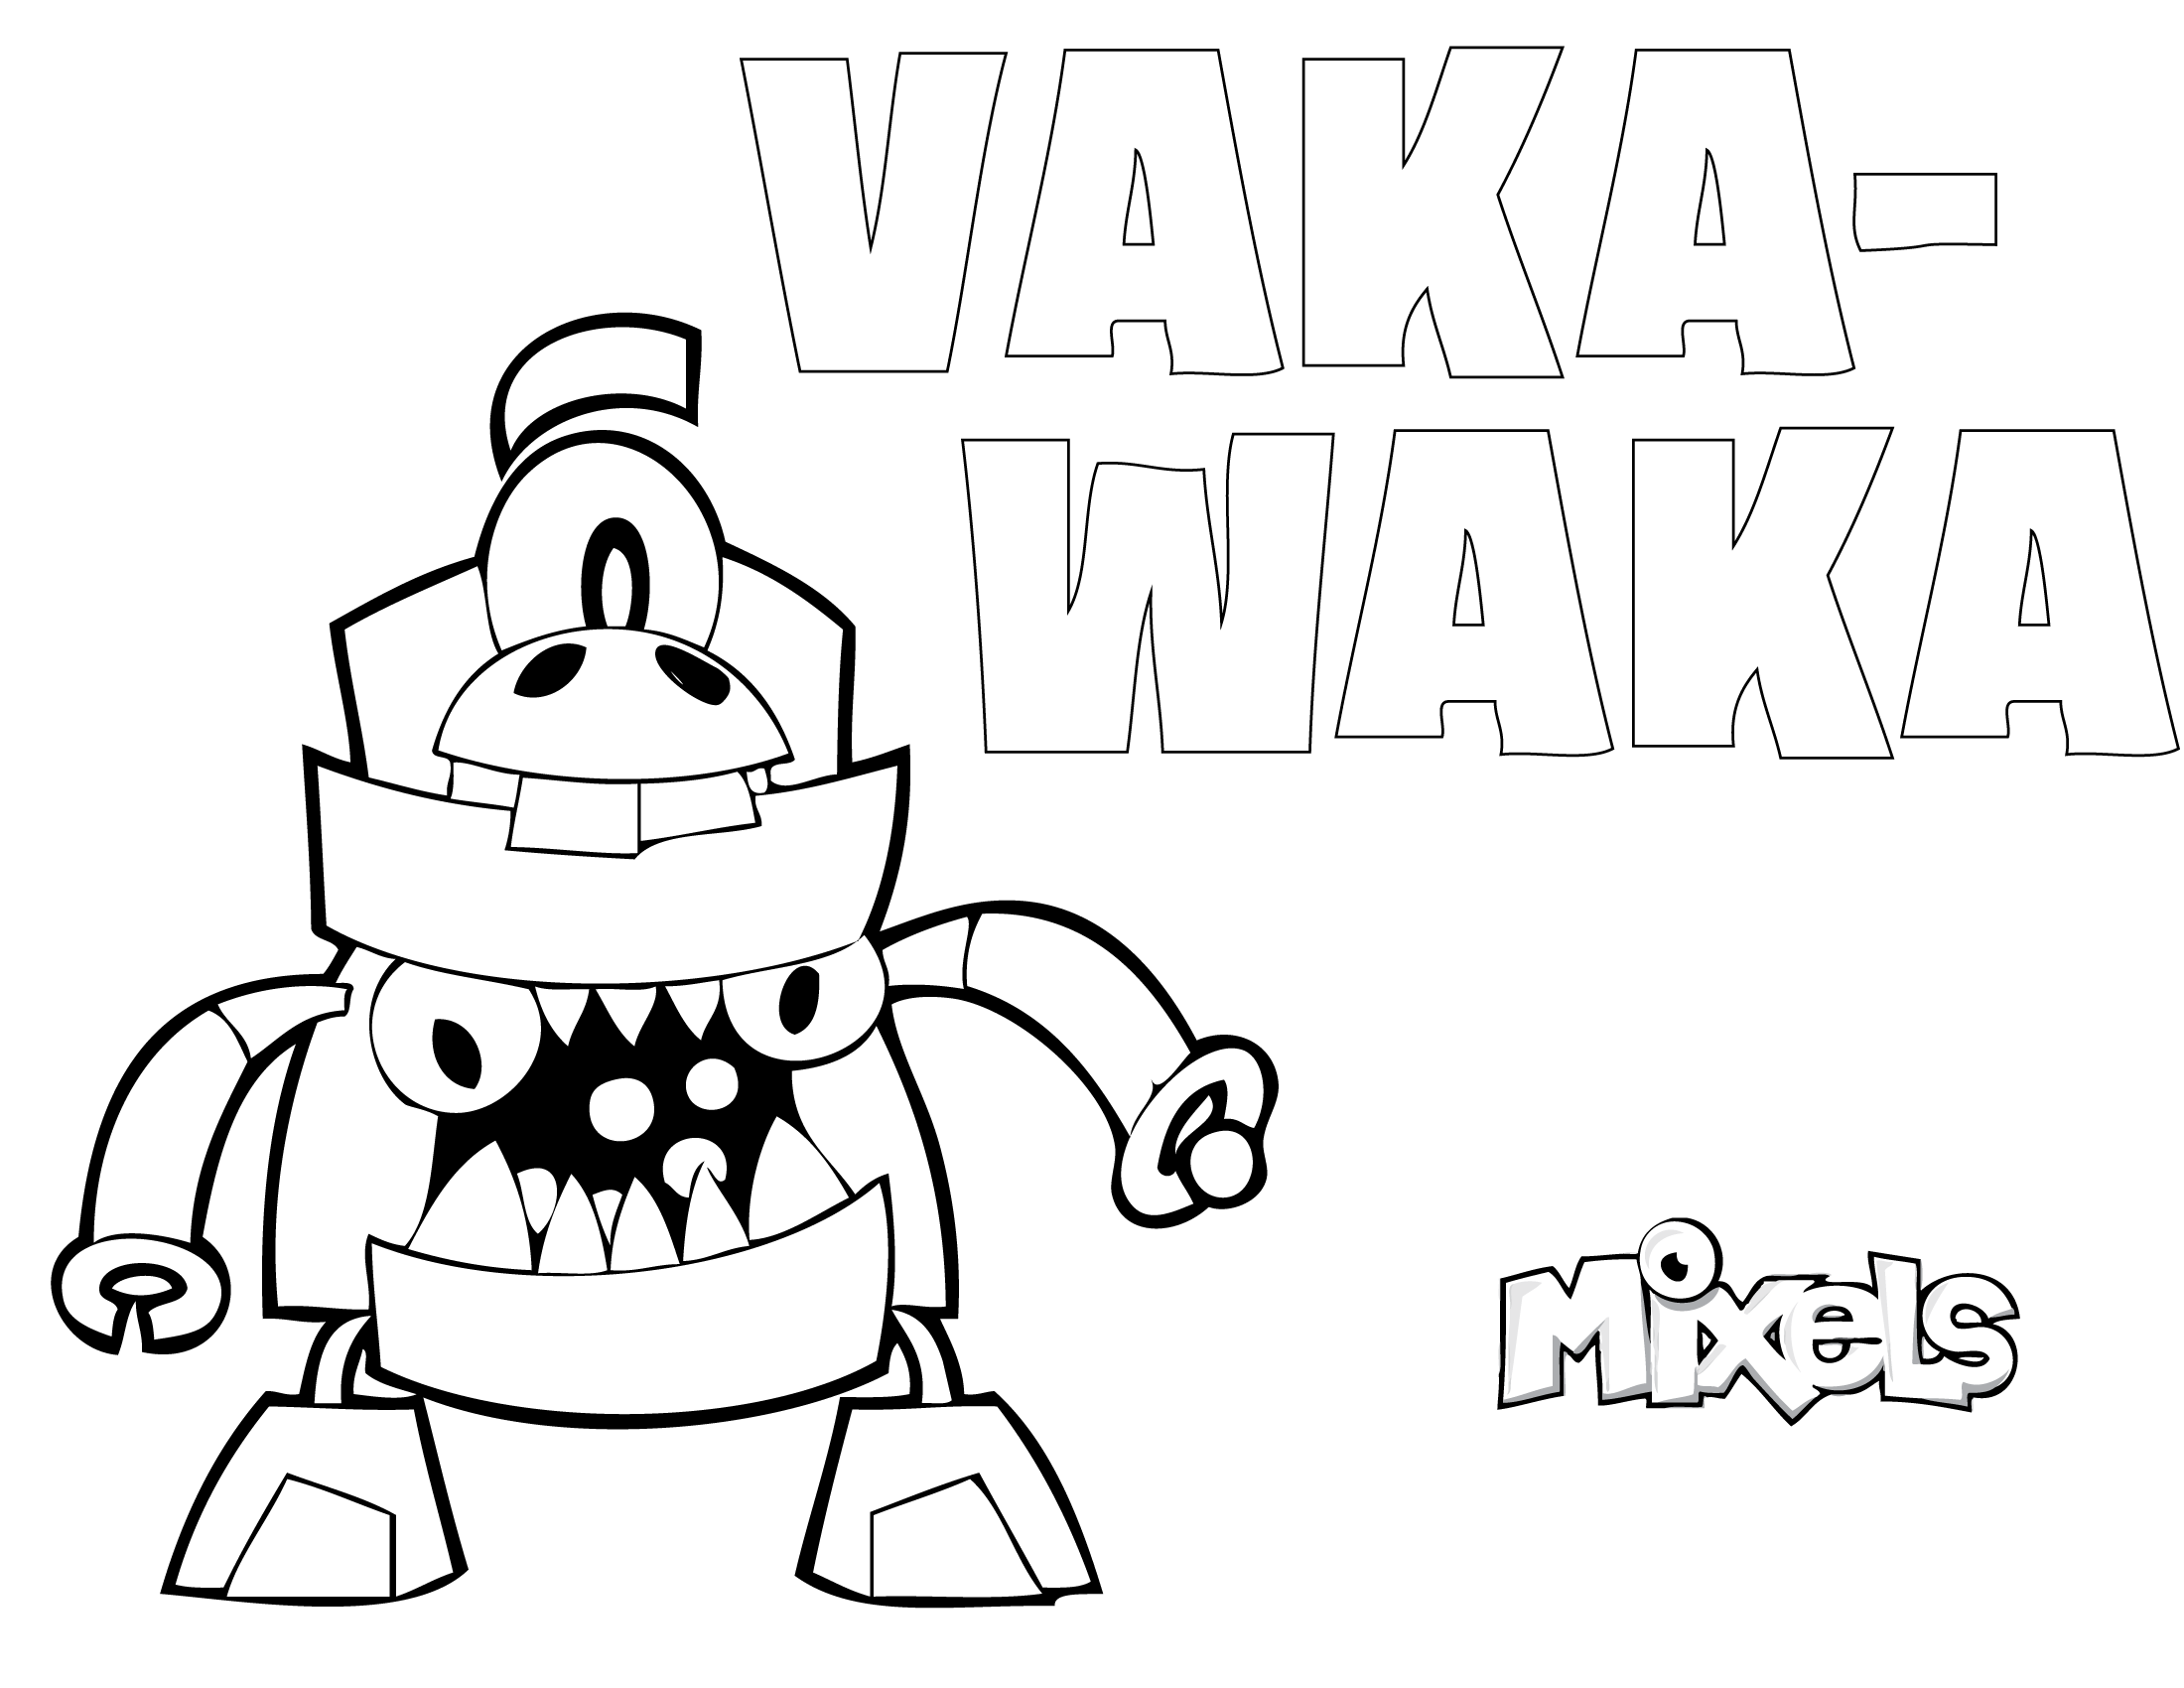 mixels coloring pages eric s activity pages page 2